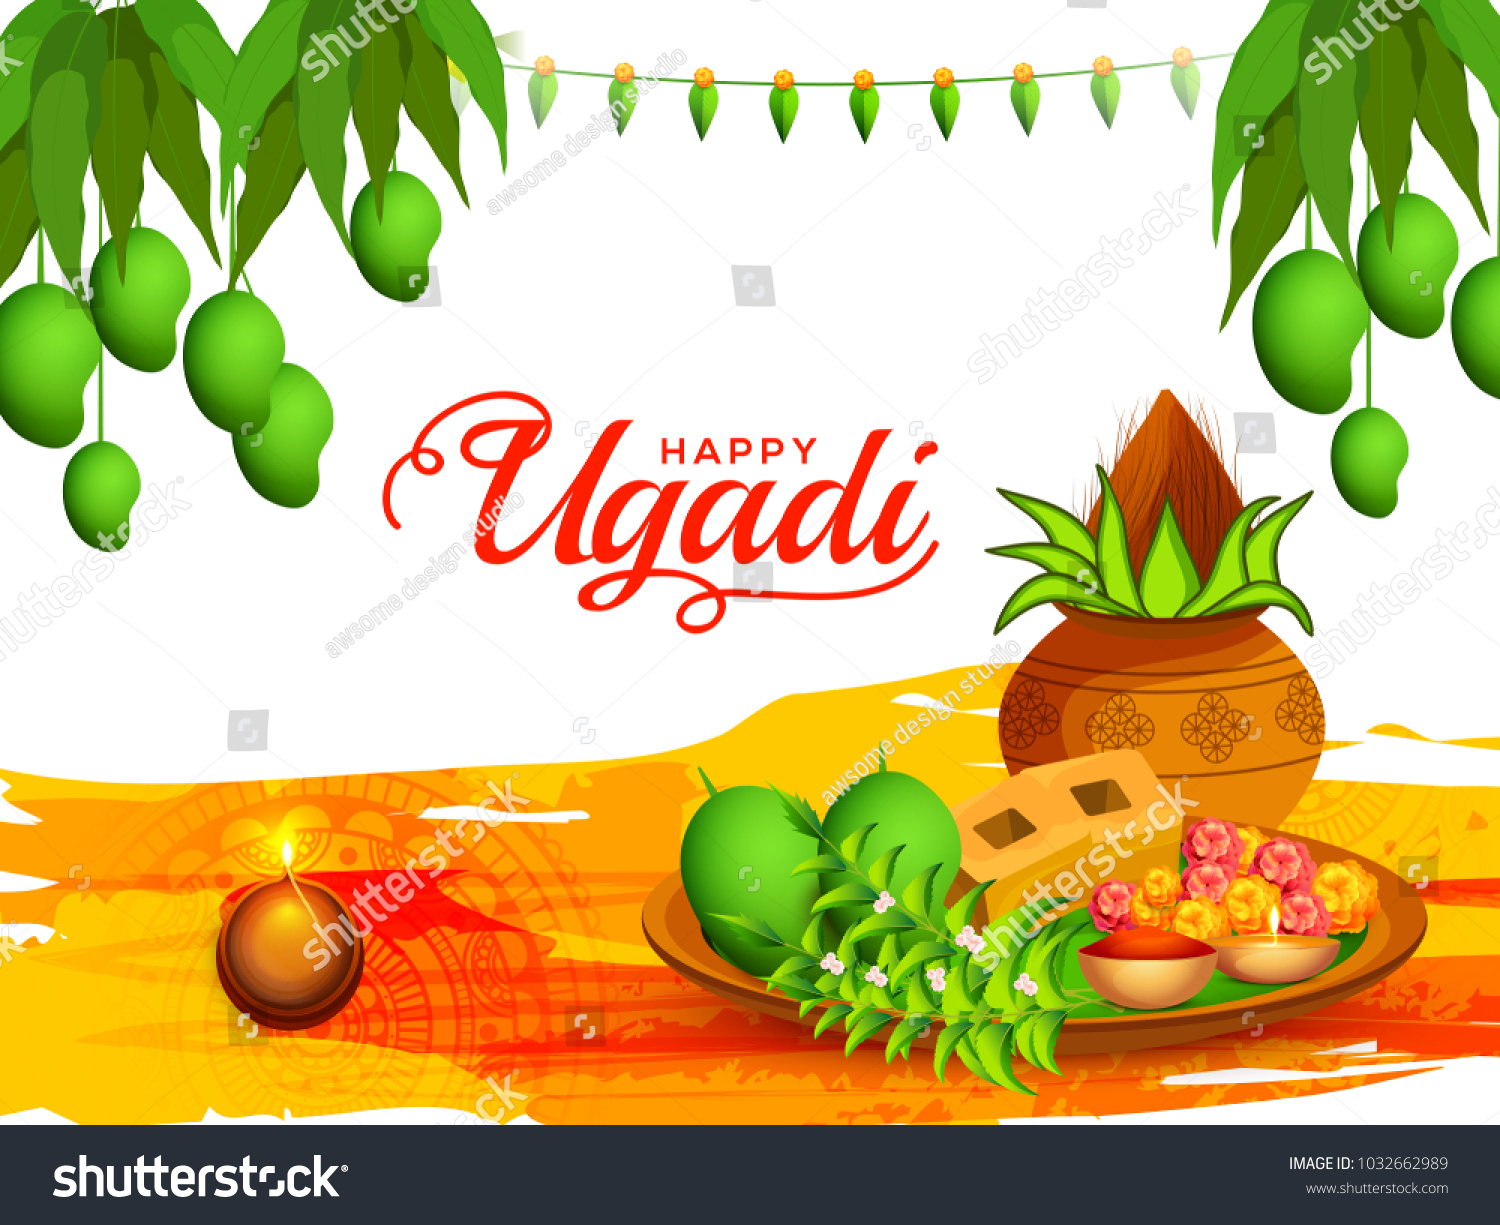 Illustration Happy Ugadi Greeting Card Background Stock Vector